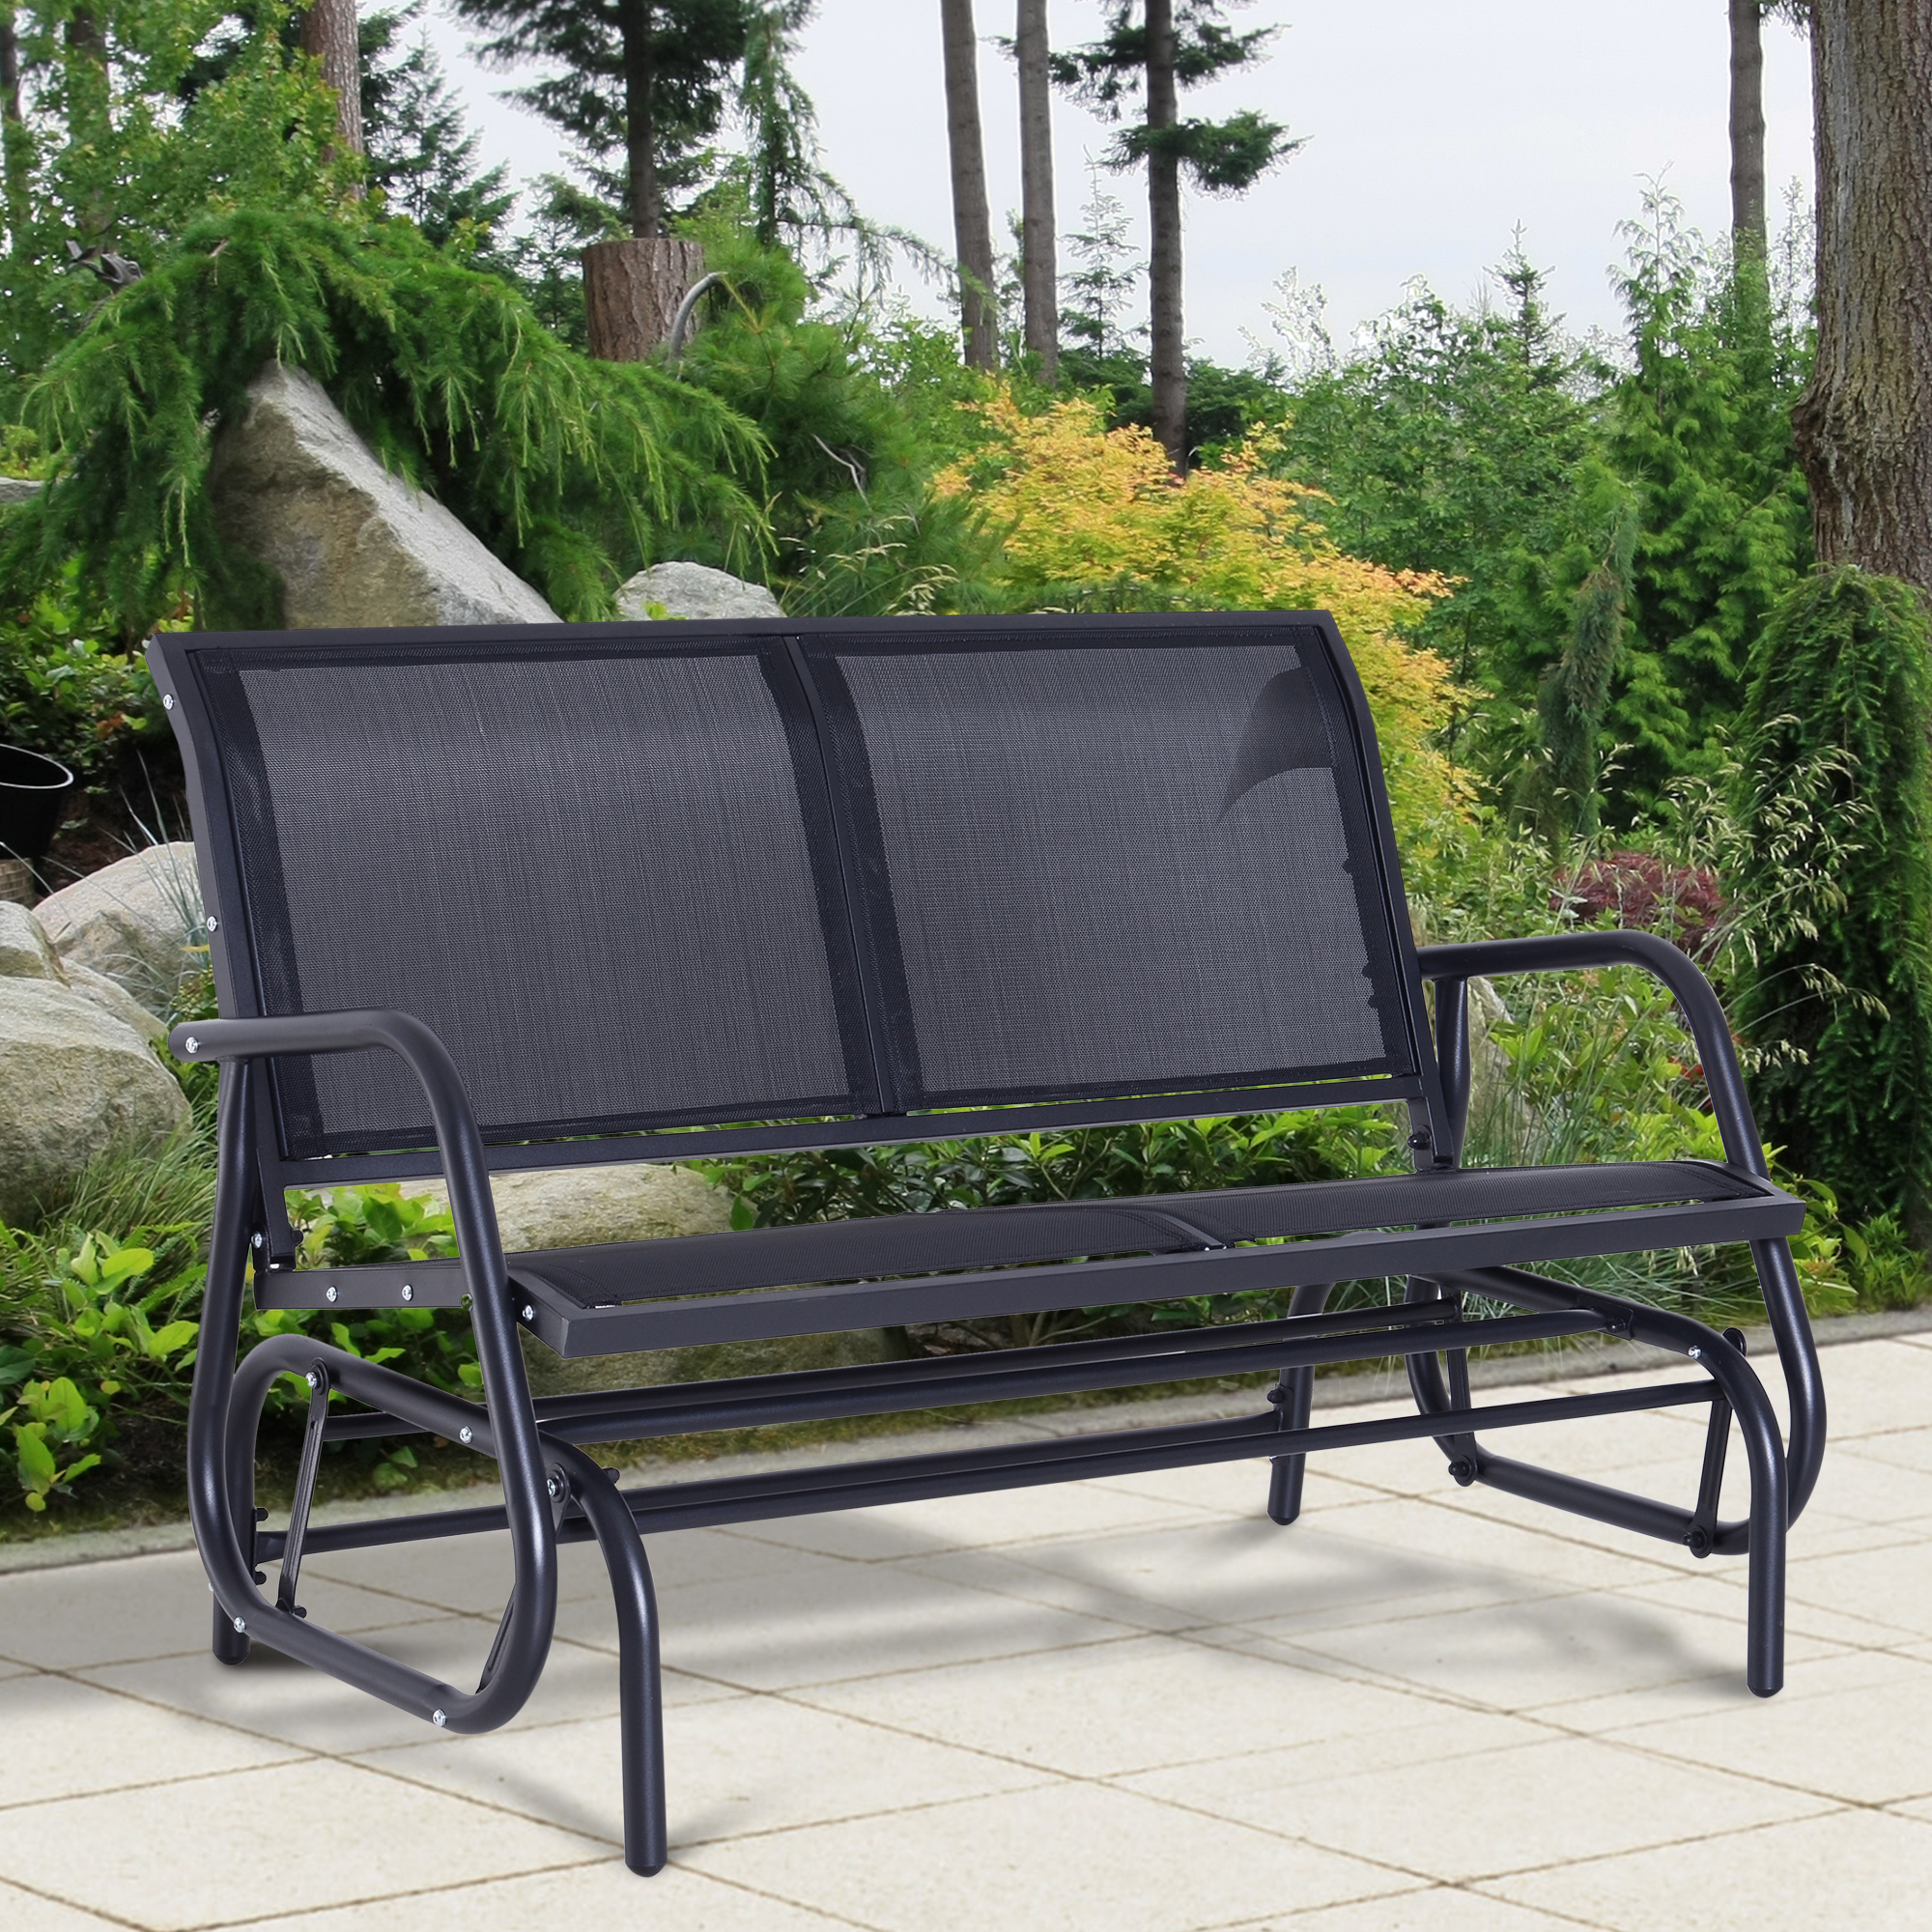 Amazing Details About Outsunny Patio Garden Glider Bench 2 Person Double Swing Chair Rocker Deck Black Gmtry Best Dining Table And Chair Ideas Images Gmtryco